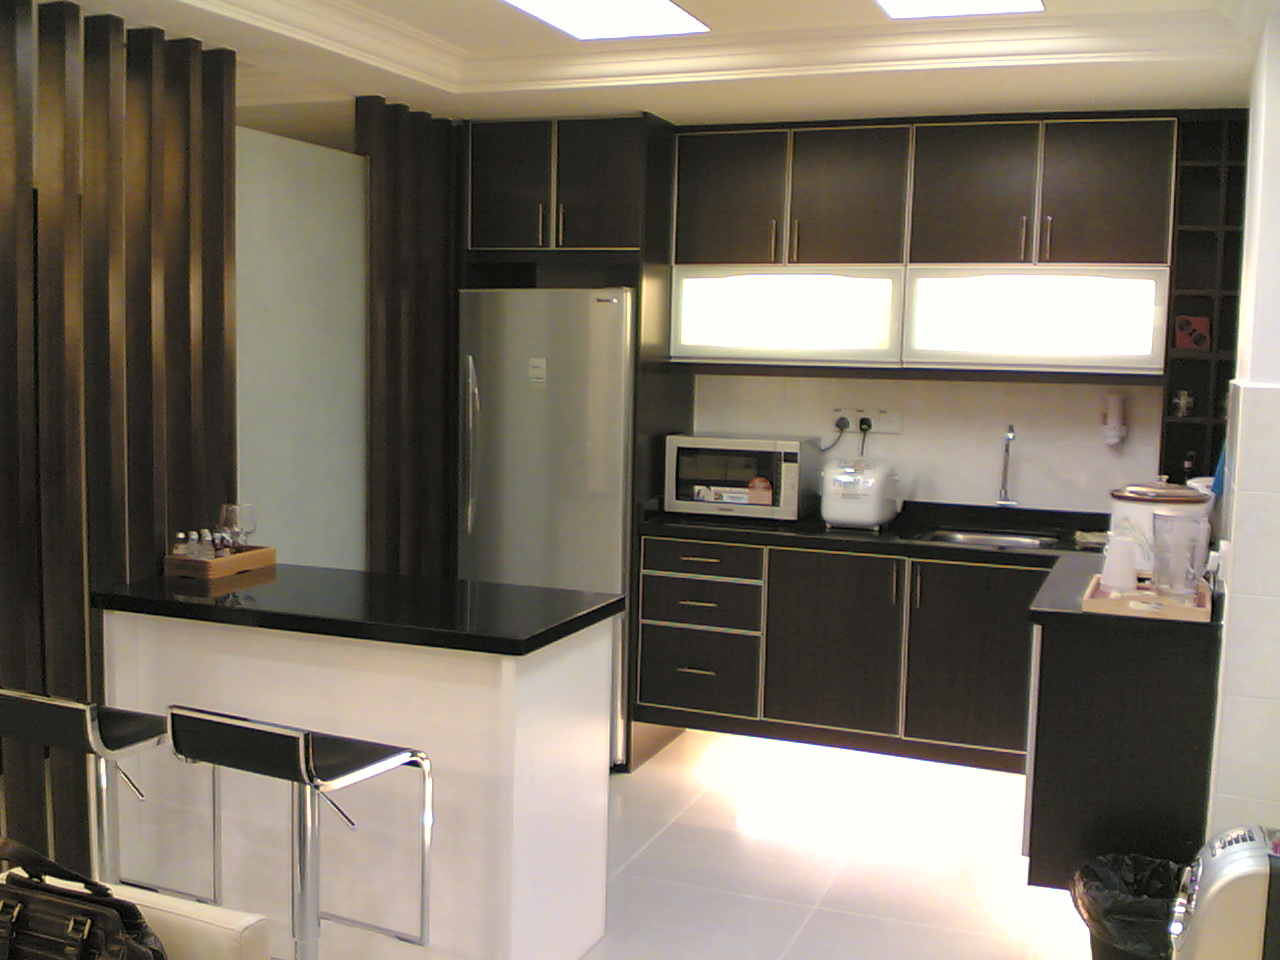 Modern Small Kitchen Design Kitchen Set Design For Small Space Kitchen  Ideas Small House